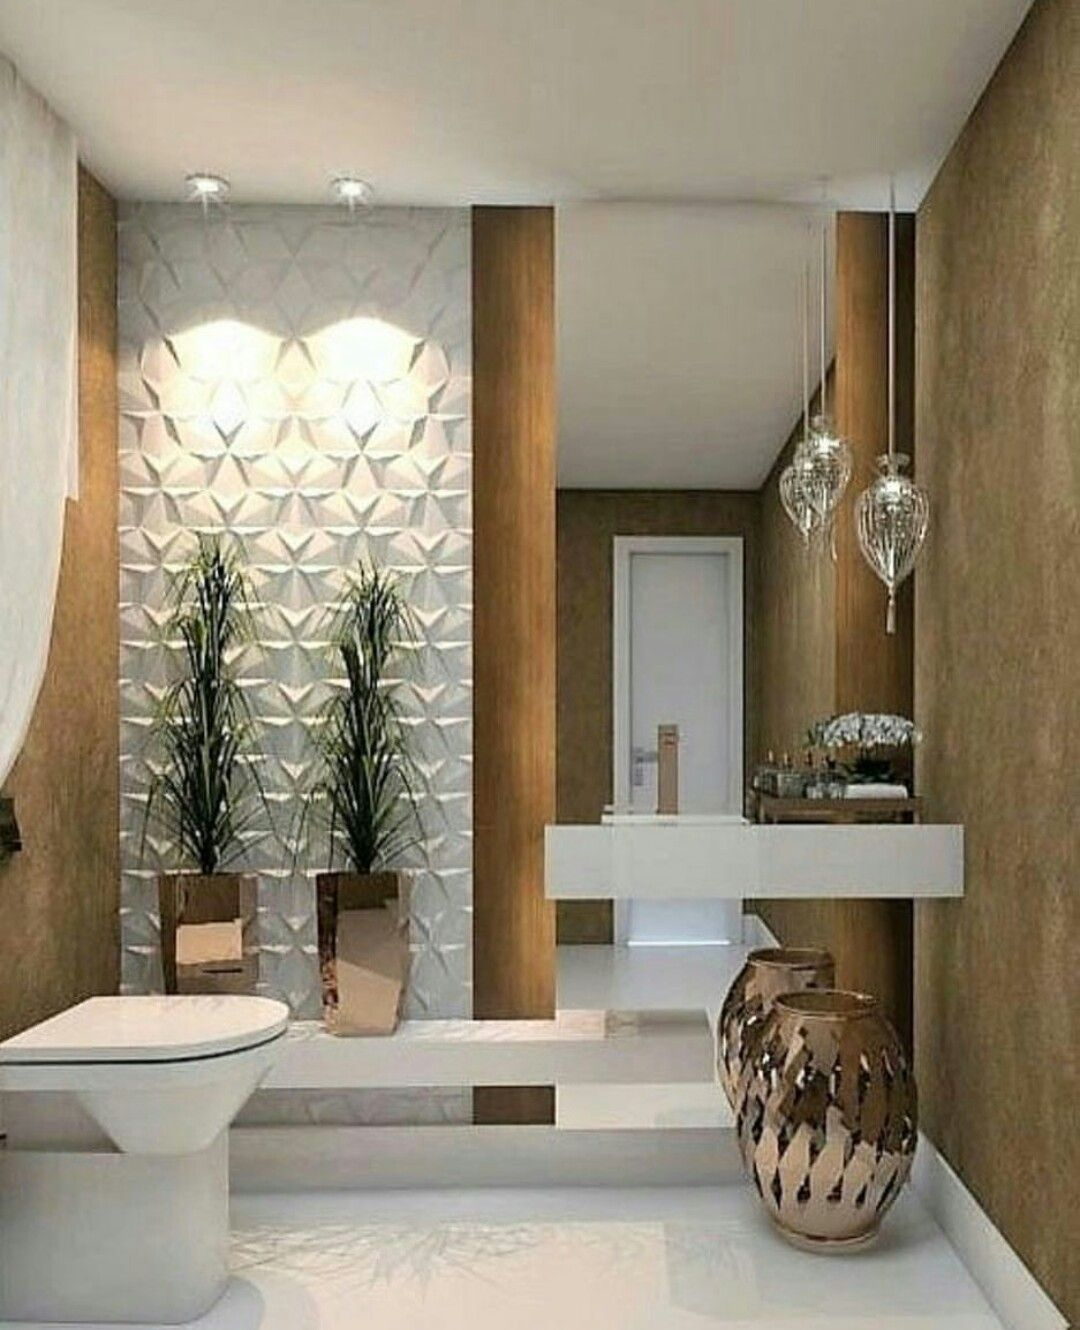 60 Elegant Small Master Bathroom Remodel Ideas 15 En 2019: Pin De Diana Savarese En Decoracio